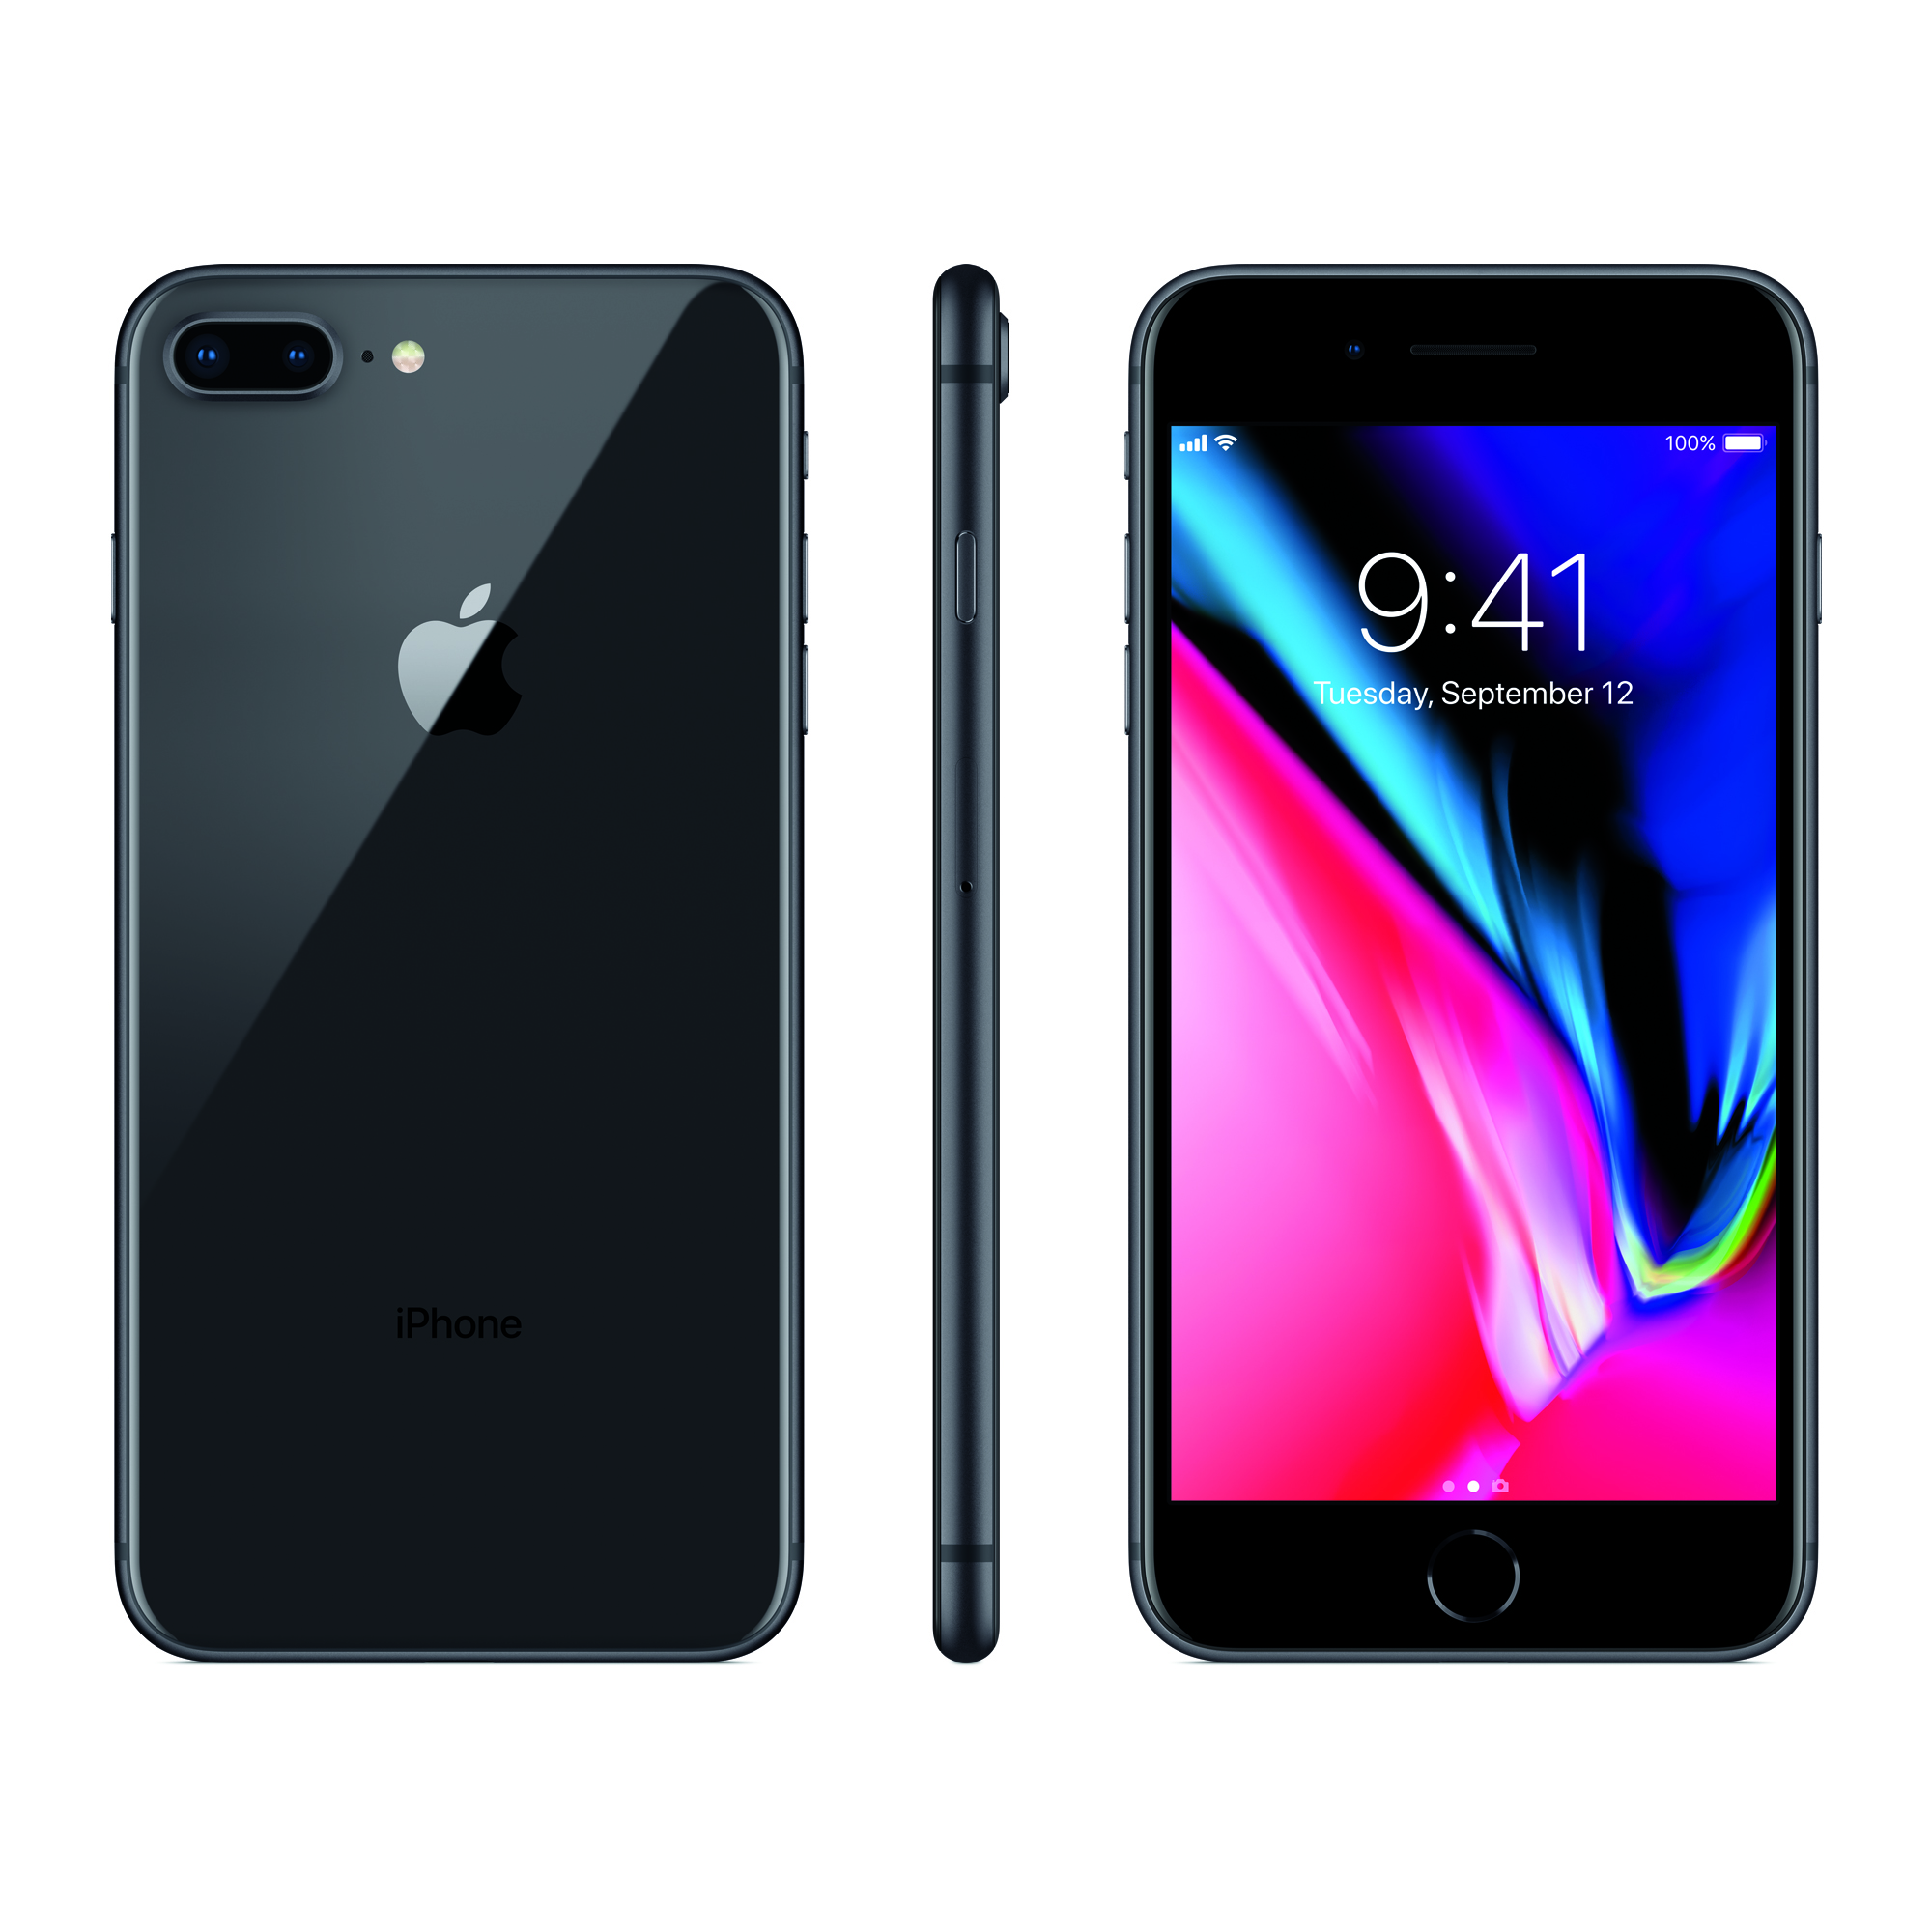 Another Amazing I Phone by Apple